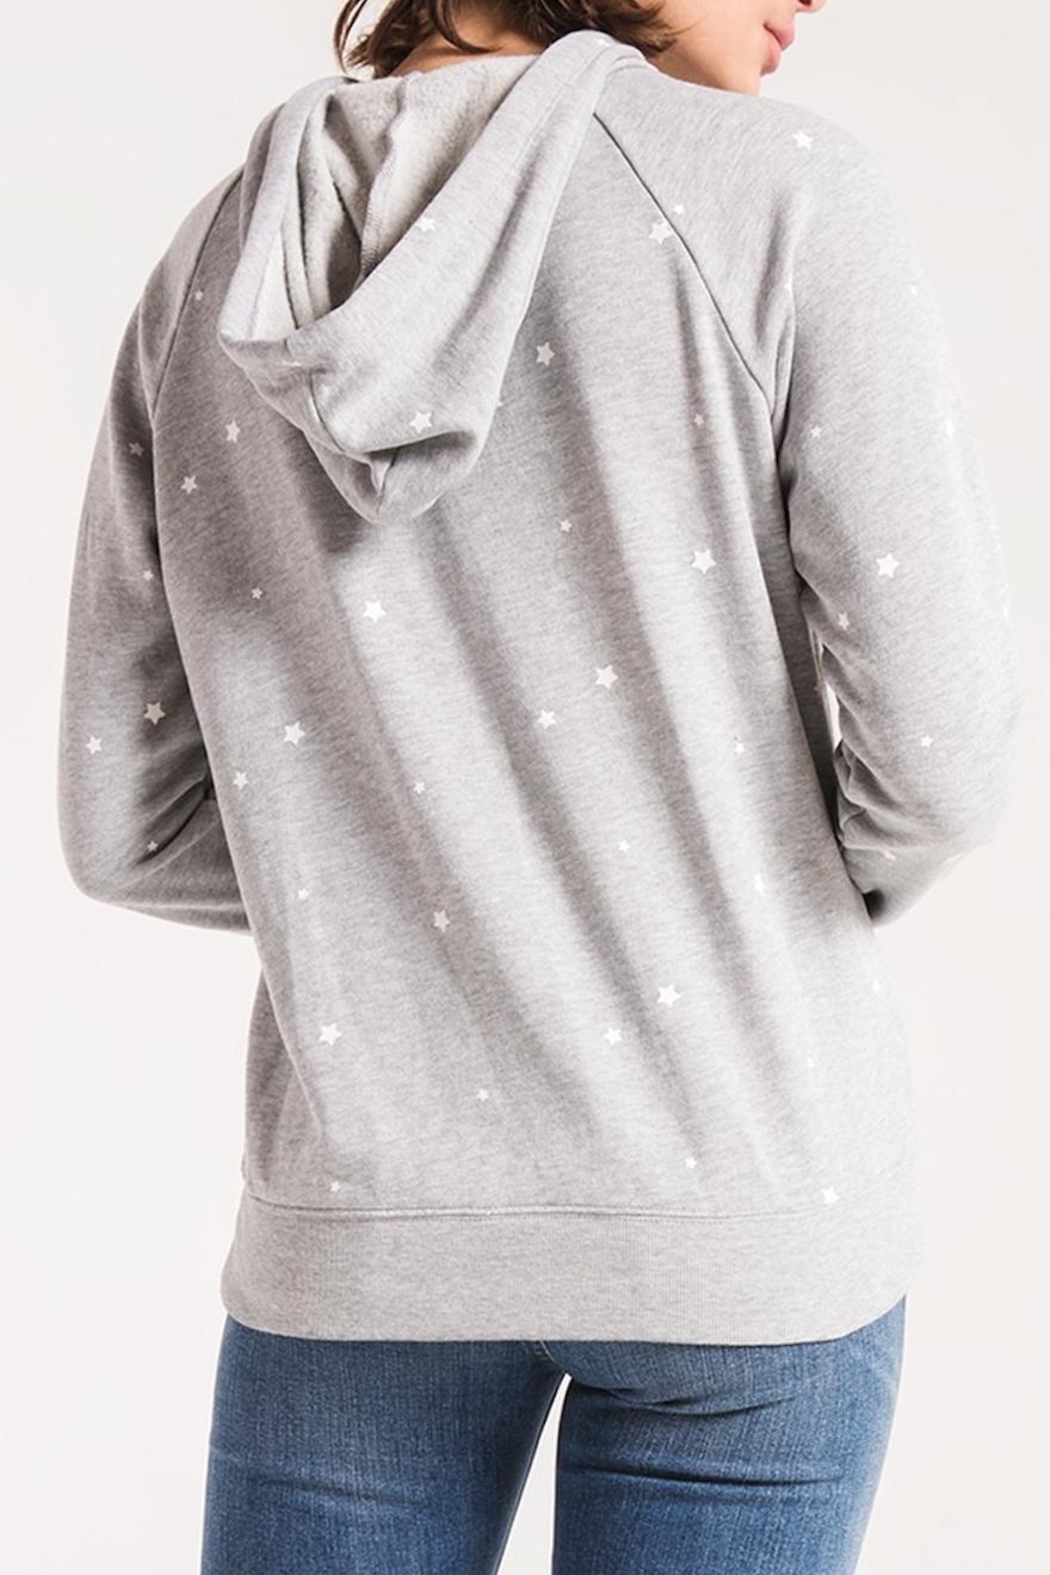 z supply Star Print Pullover - Side Cropped Image